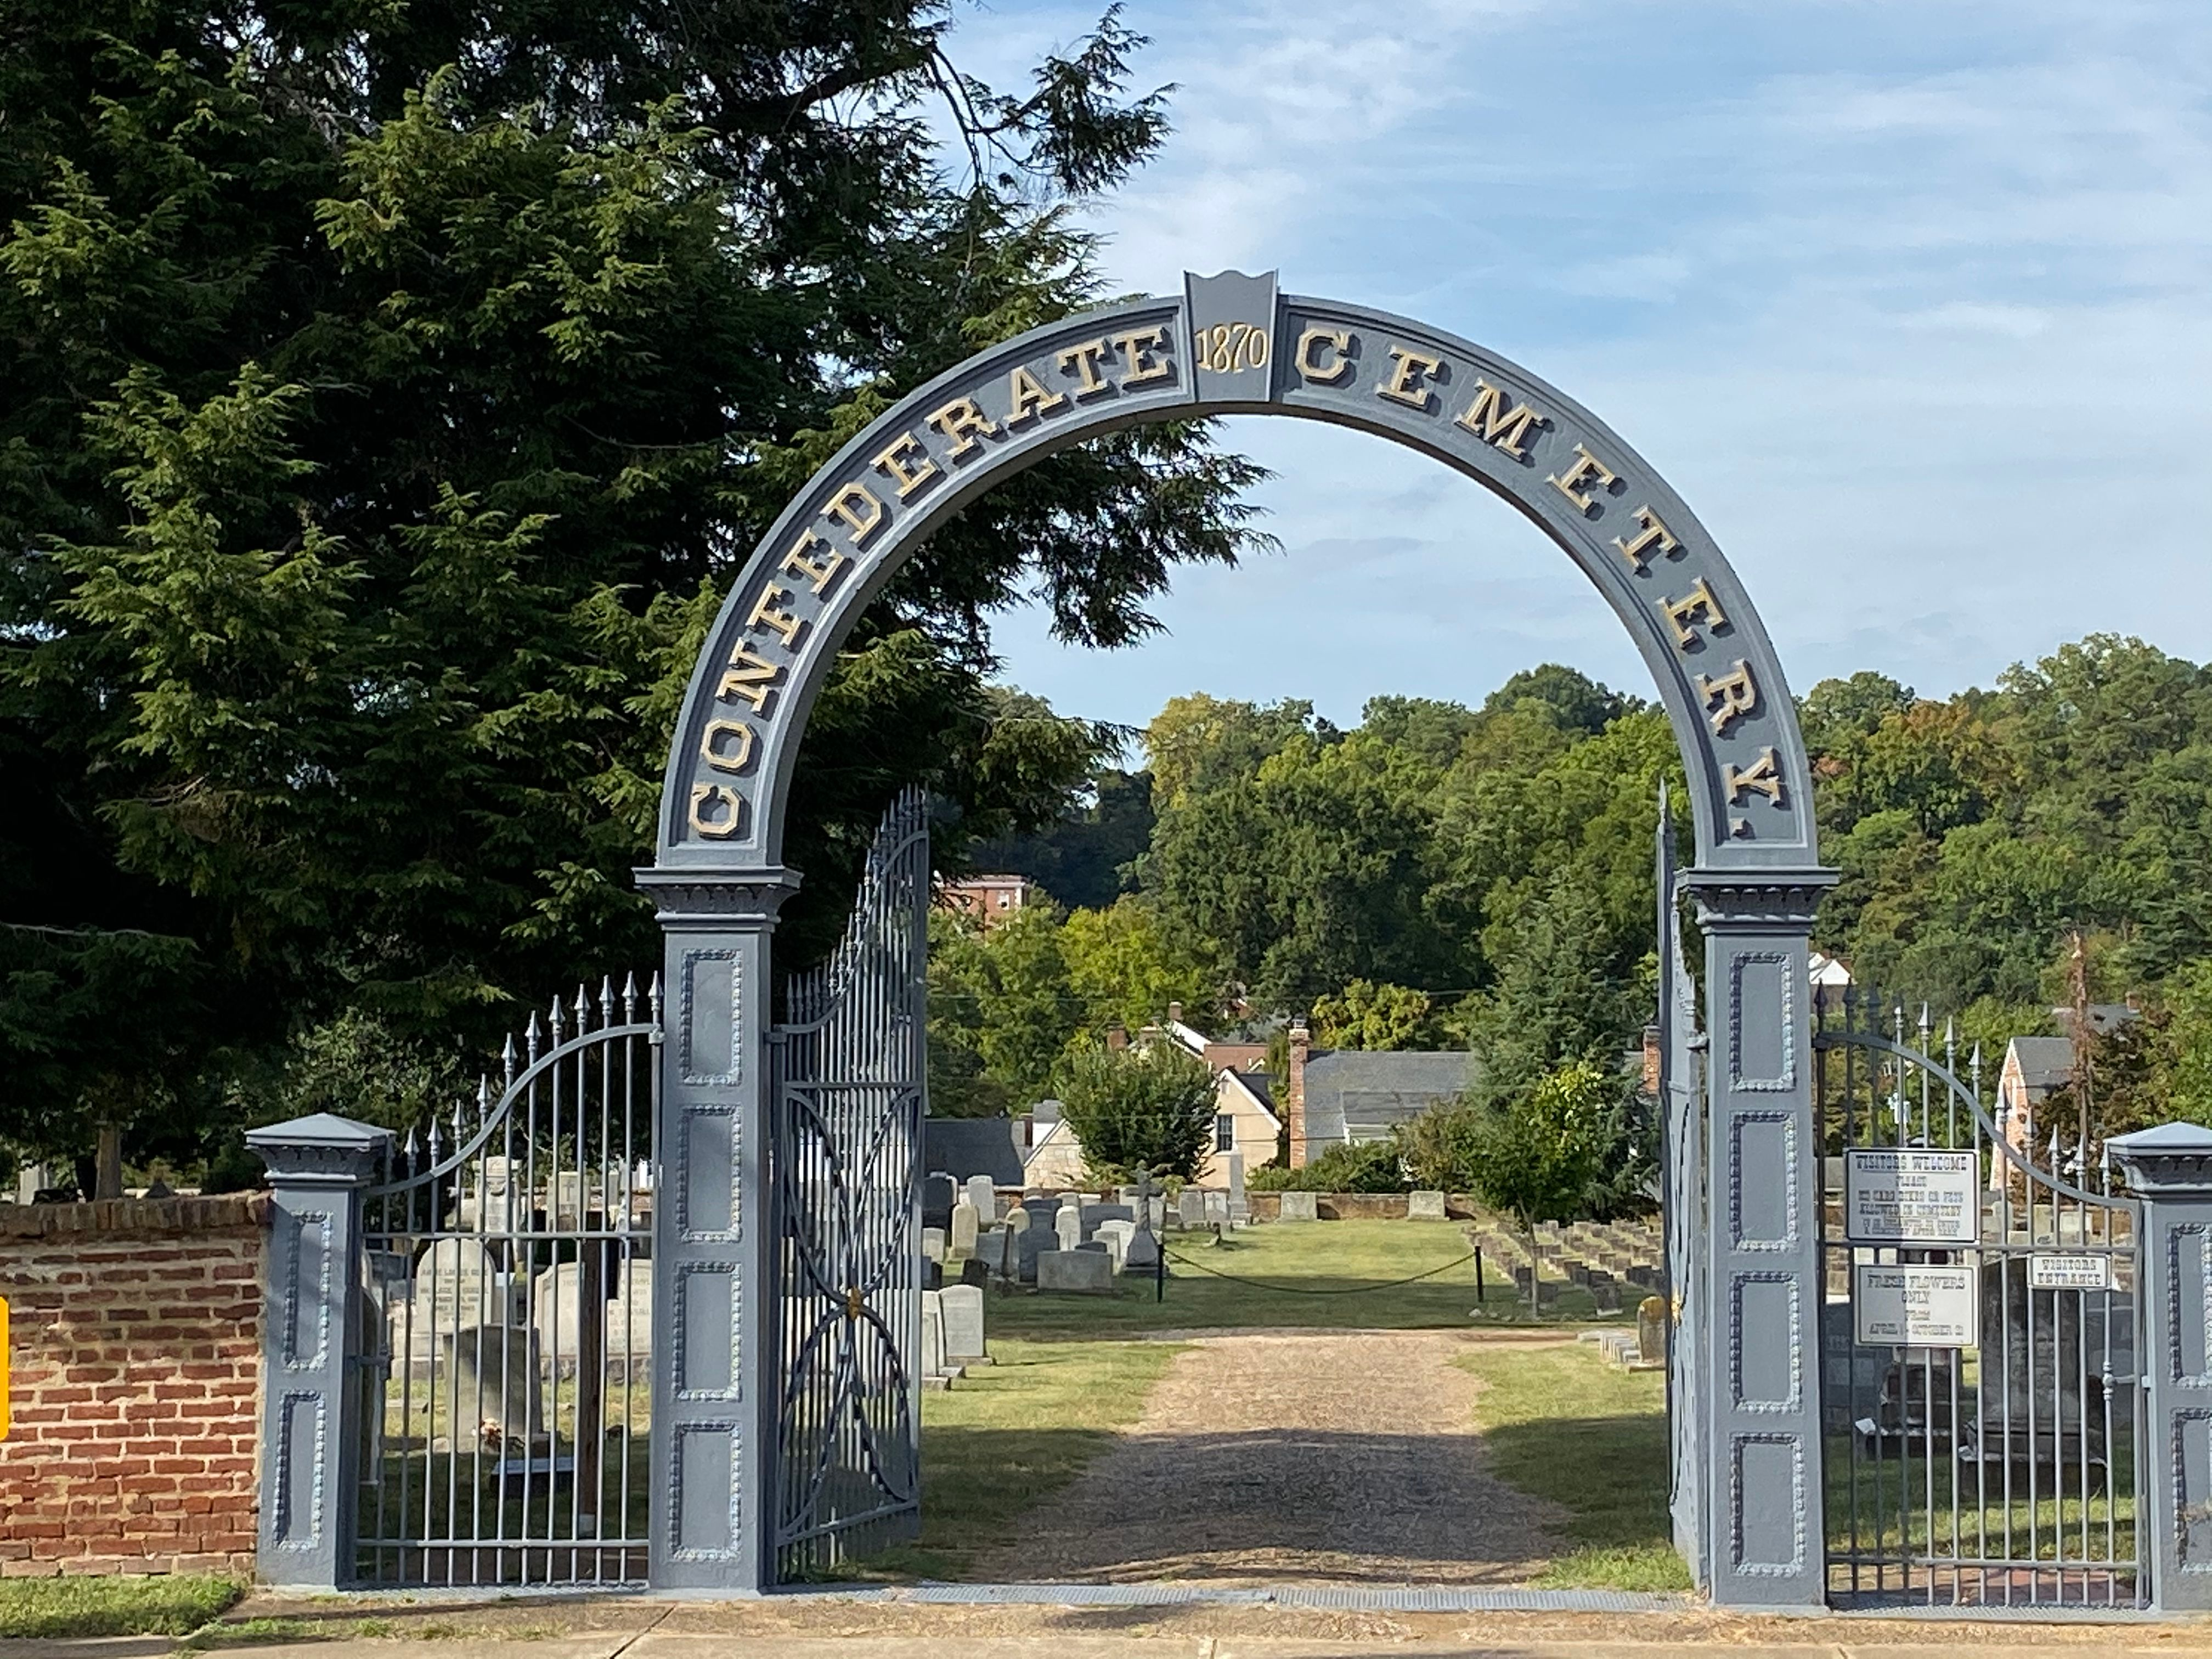 The 1870 Classical Revival-style cast iron cemetery gate